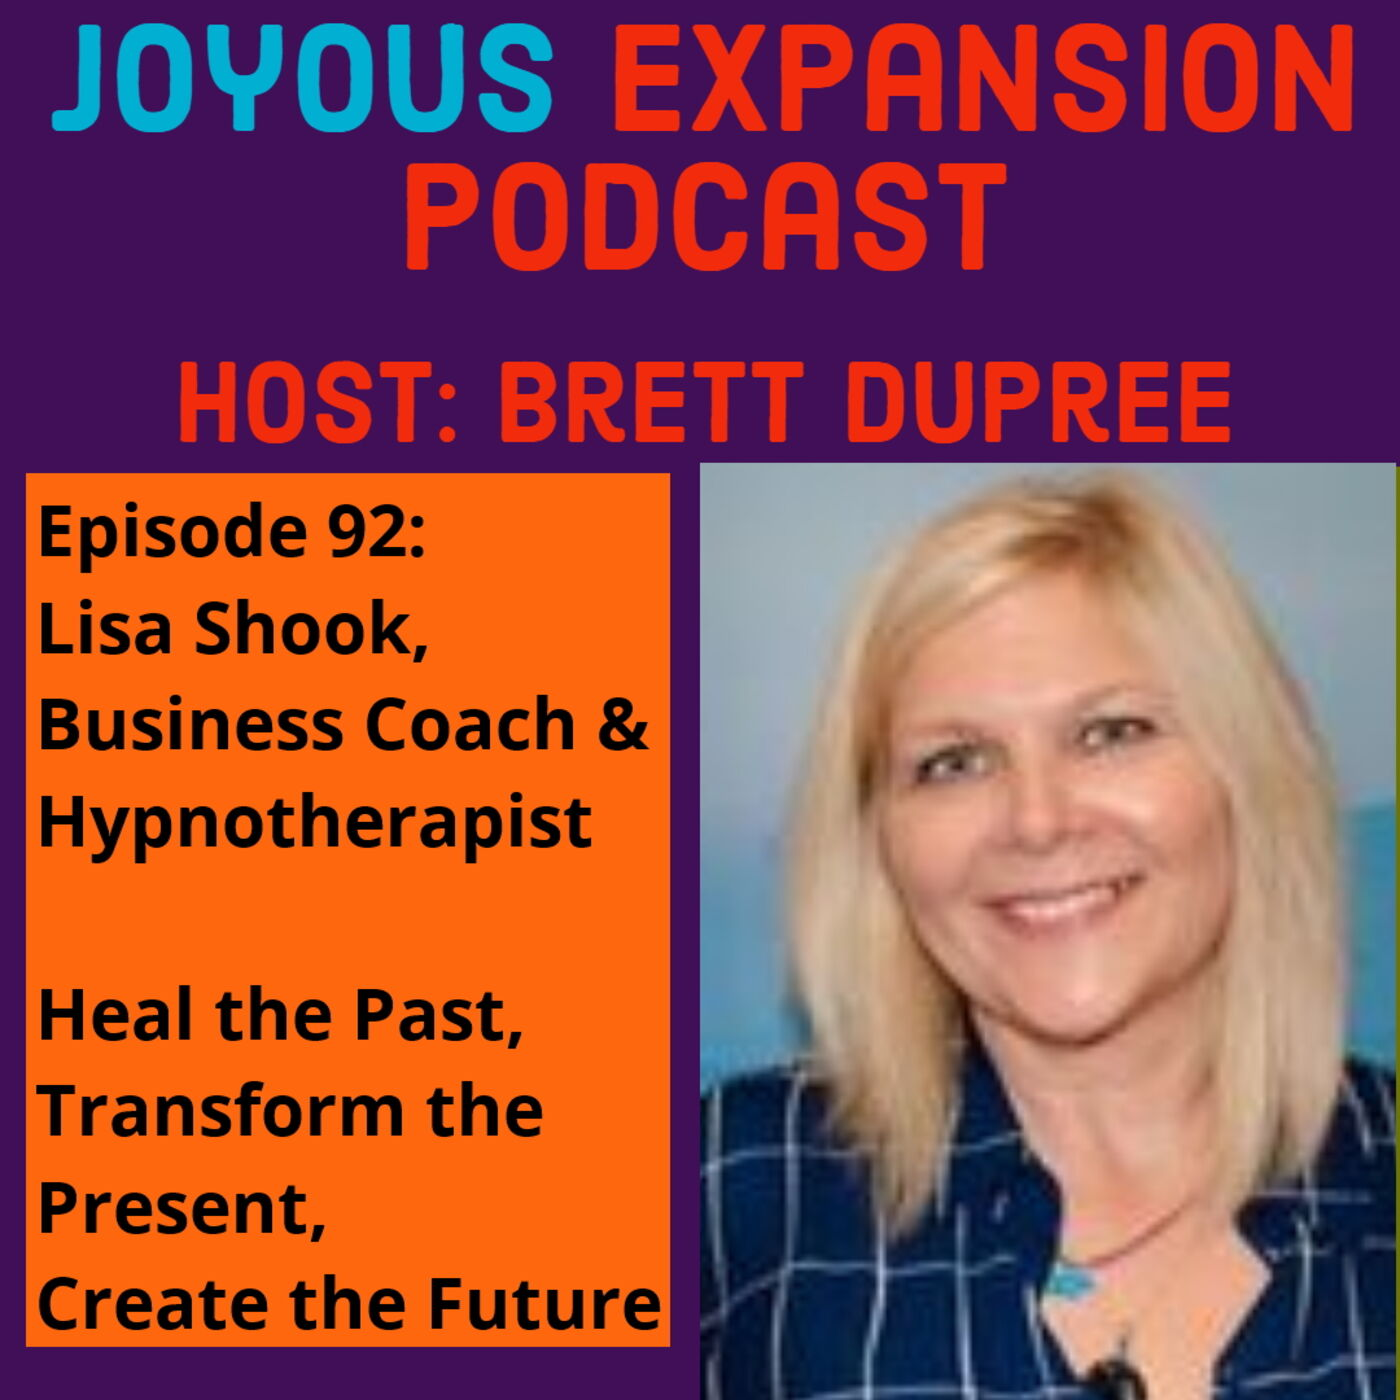 Joyous Expansion #92 - Lisa Shook - Heal the Past, Transform the Present, Create the Future